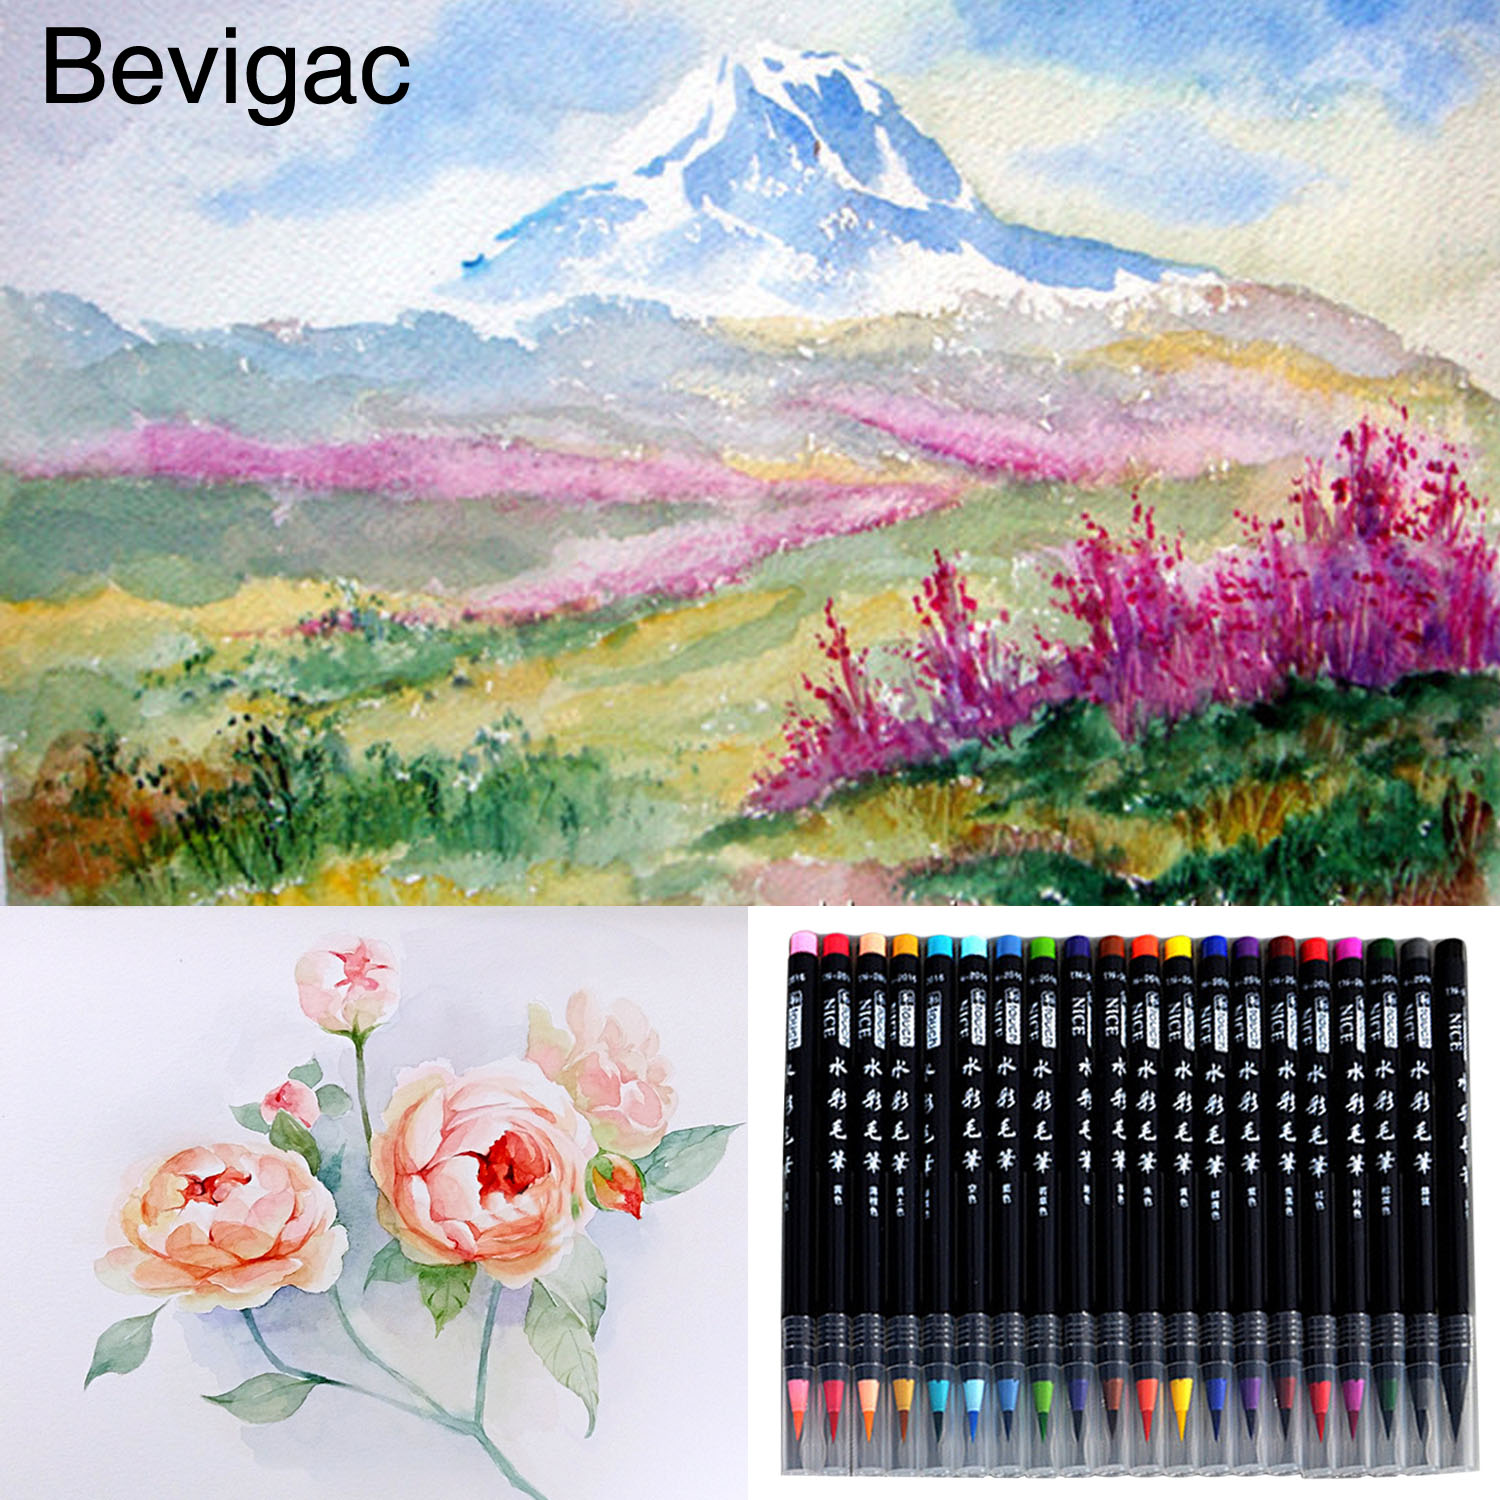 20 PCS Assorted Colors Watercolor Brush Pens Ink Painting Brush Art Supplies for Students Artists Making Manga Comic Calligraphy 20 colors premium painting soft brush pens watercolor art markers for sketch drawing calligraphy manga comic